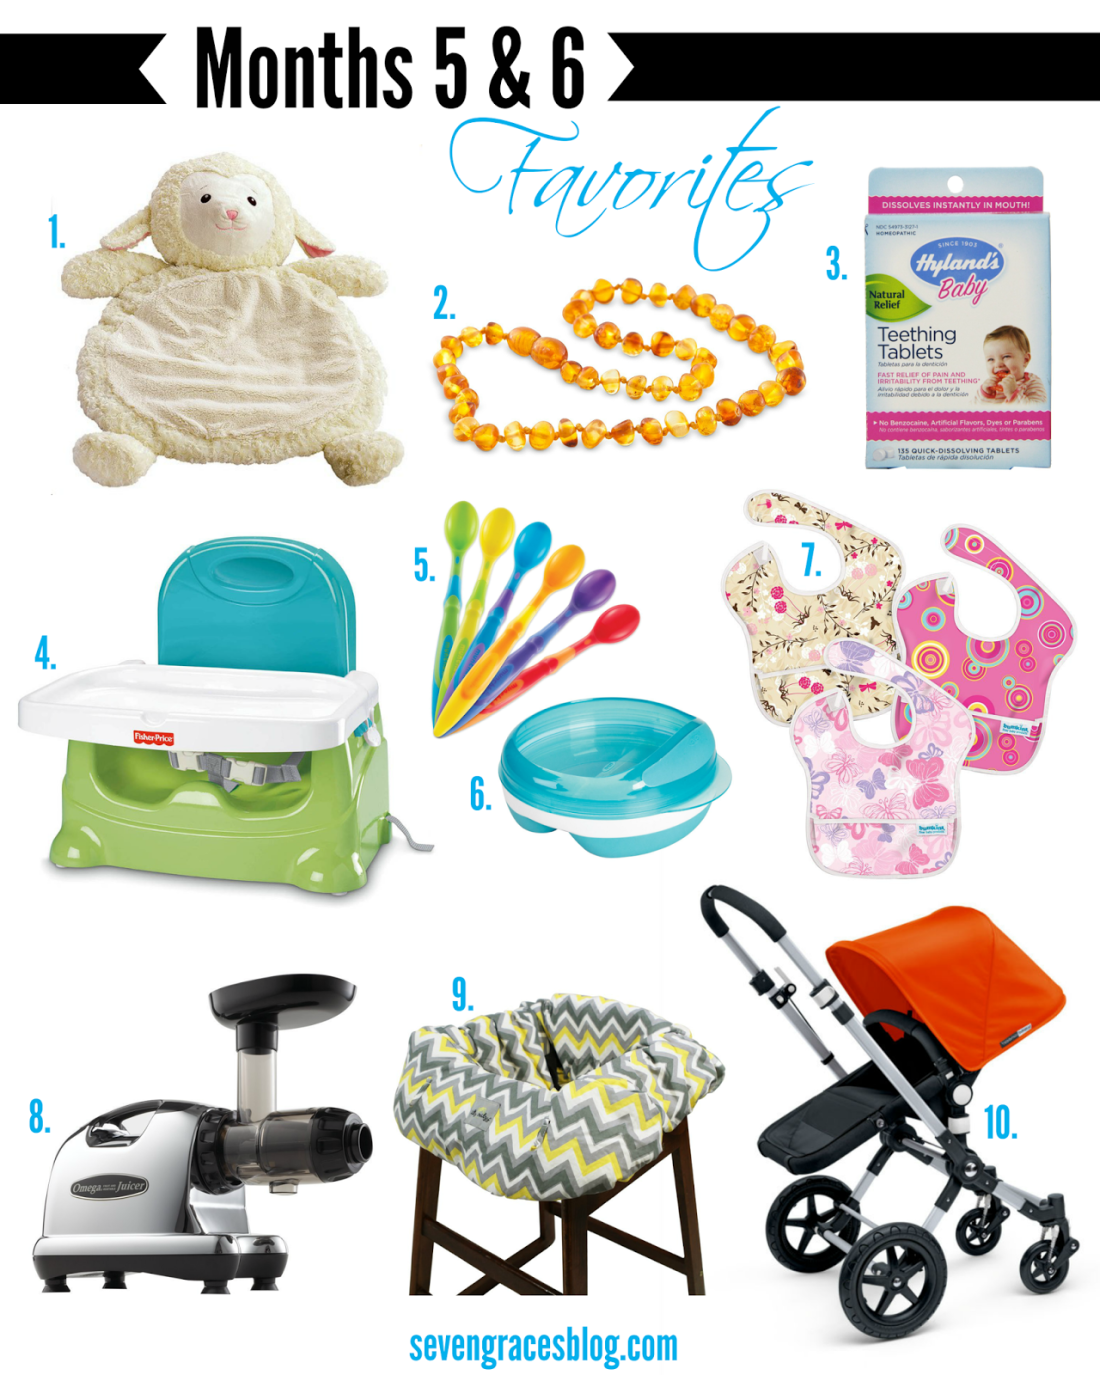 Top 10 Baby Items for Months 5 & 6: Teething & Feeding ...